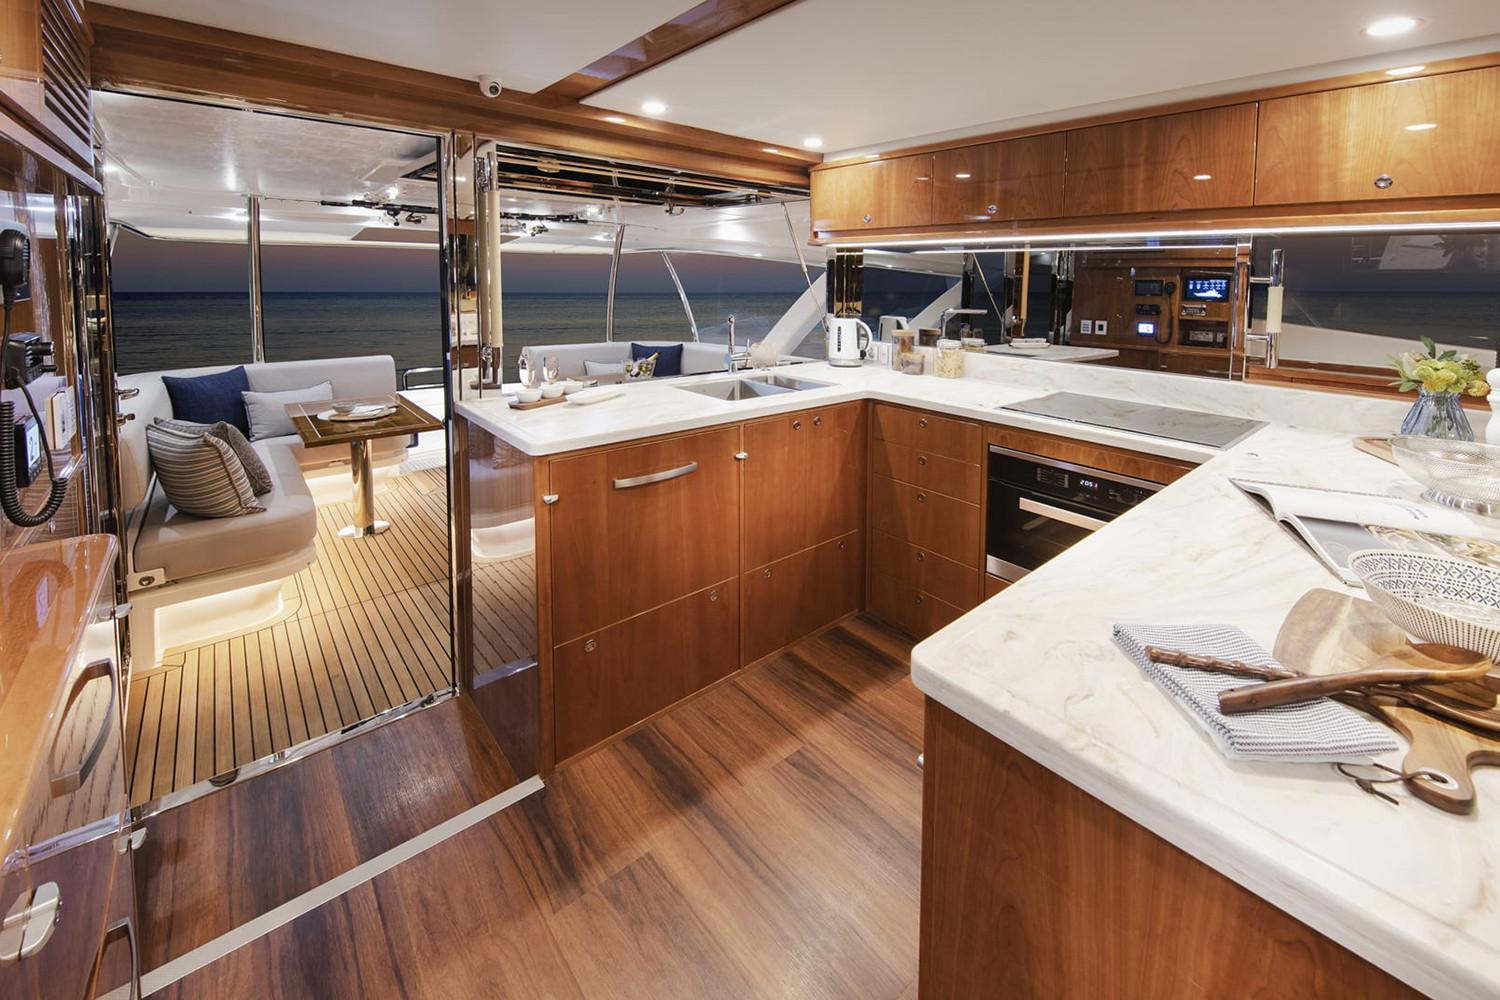 2021 Riviera 72 Sports Motor Yacht #R022 inventory image at Sun Country Coastal in Newport Beach